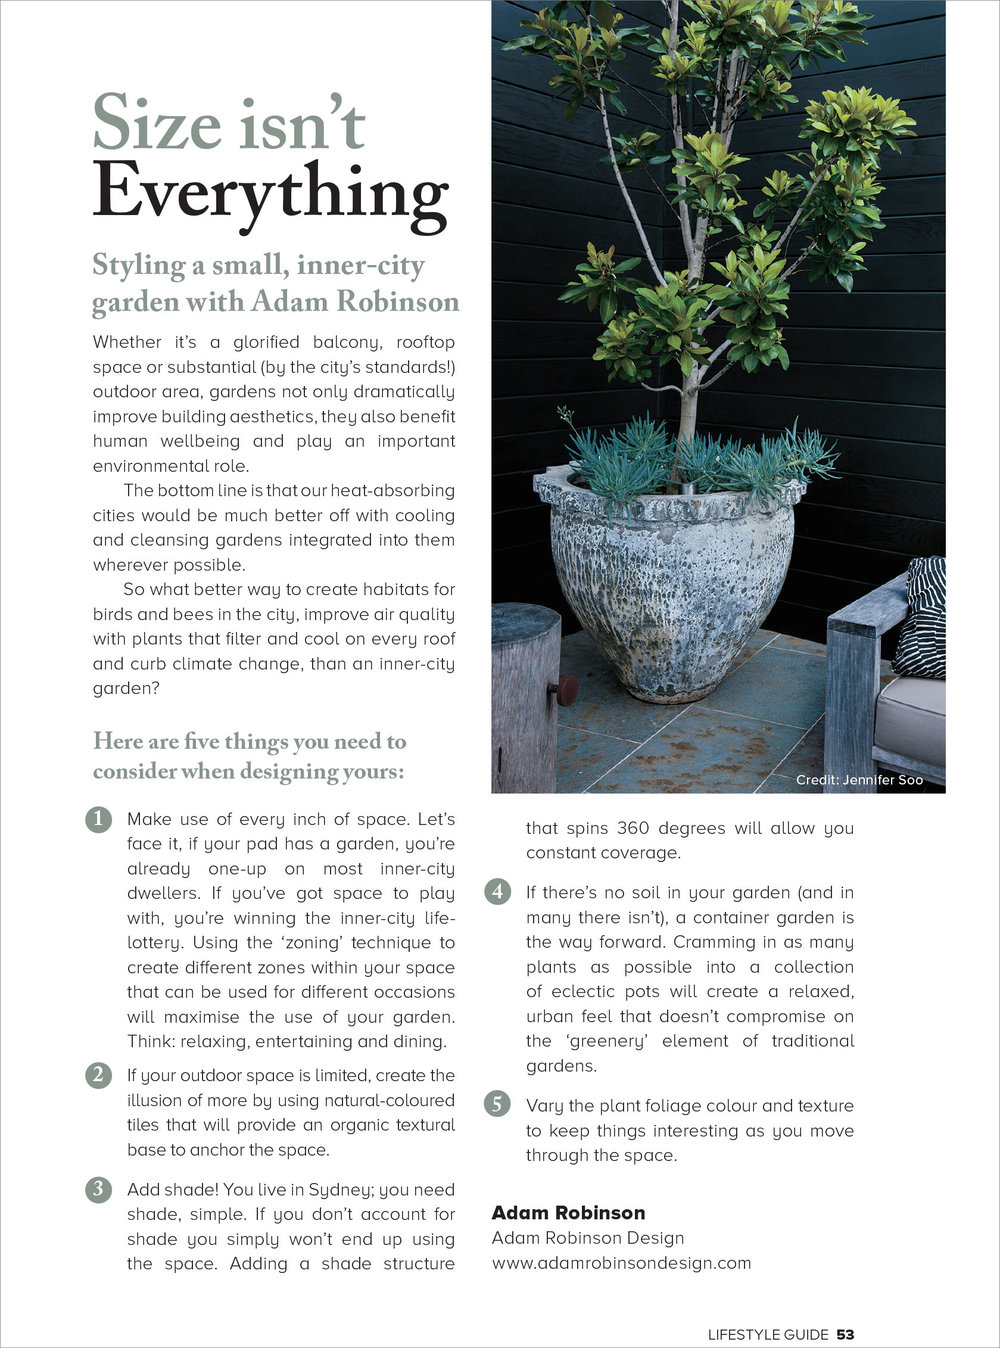 The Lifestyle Guide, Sept 2018